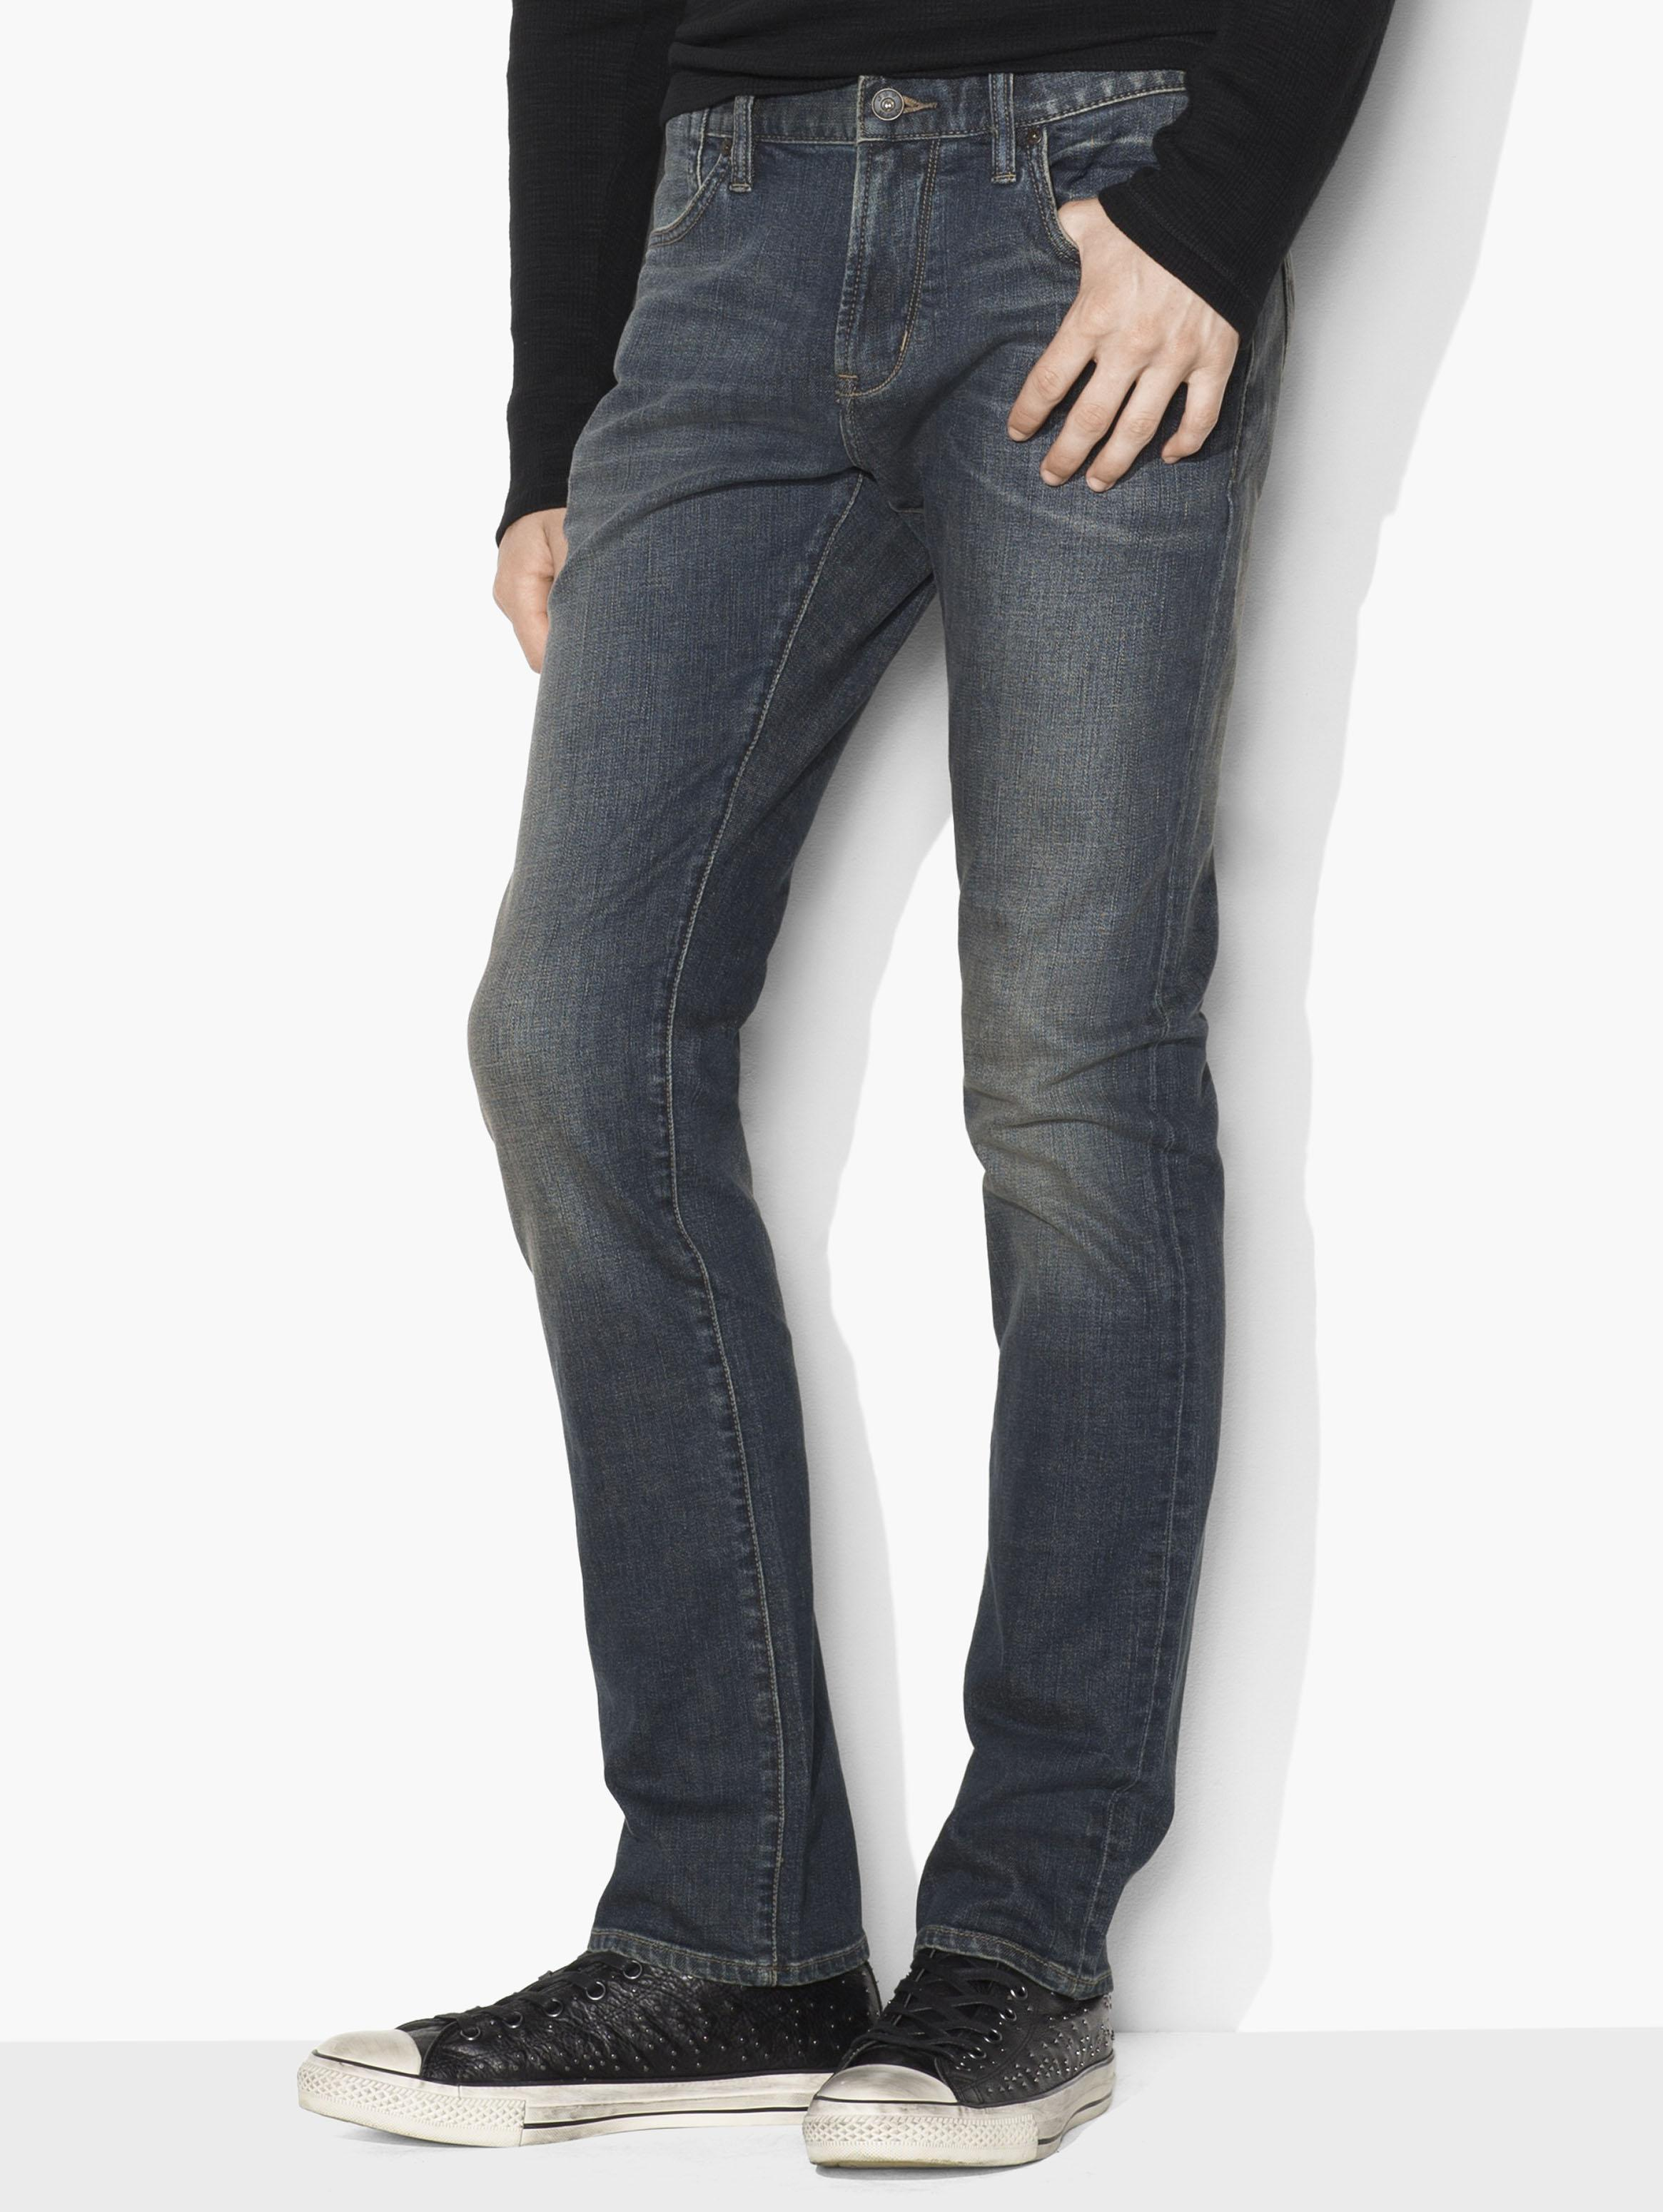 Bowery Jean in Distressed Indigo